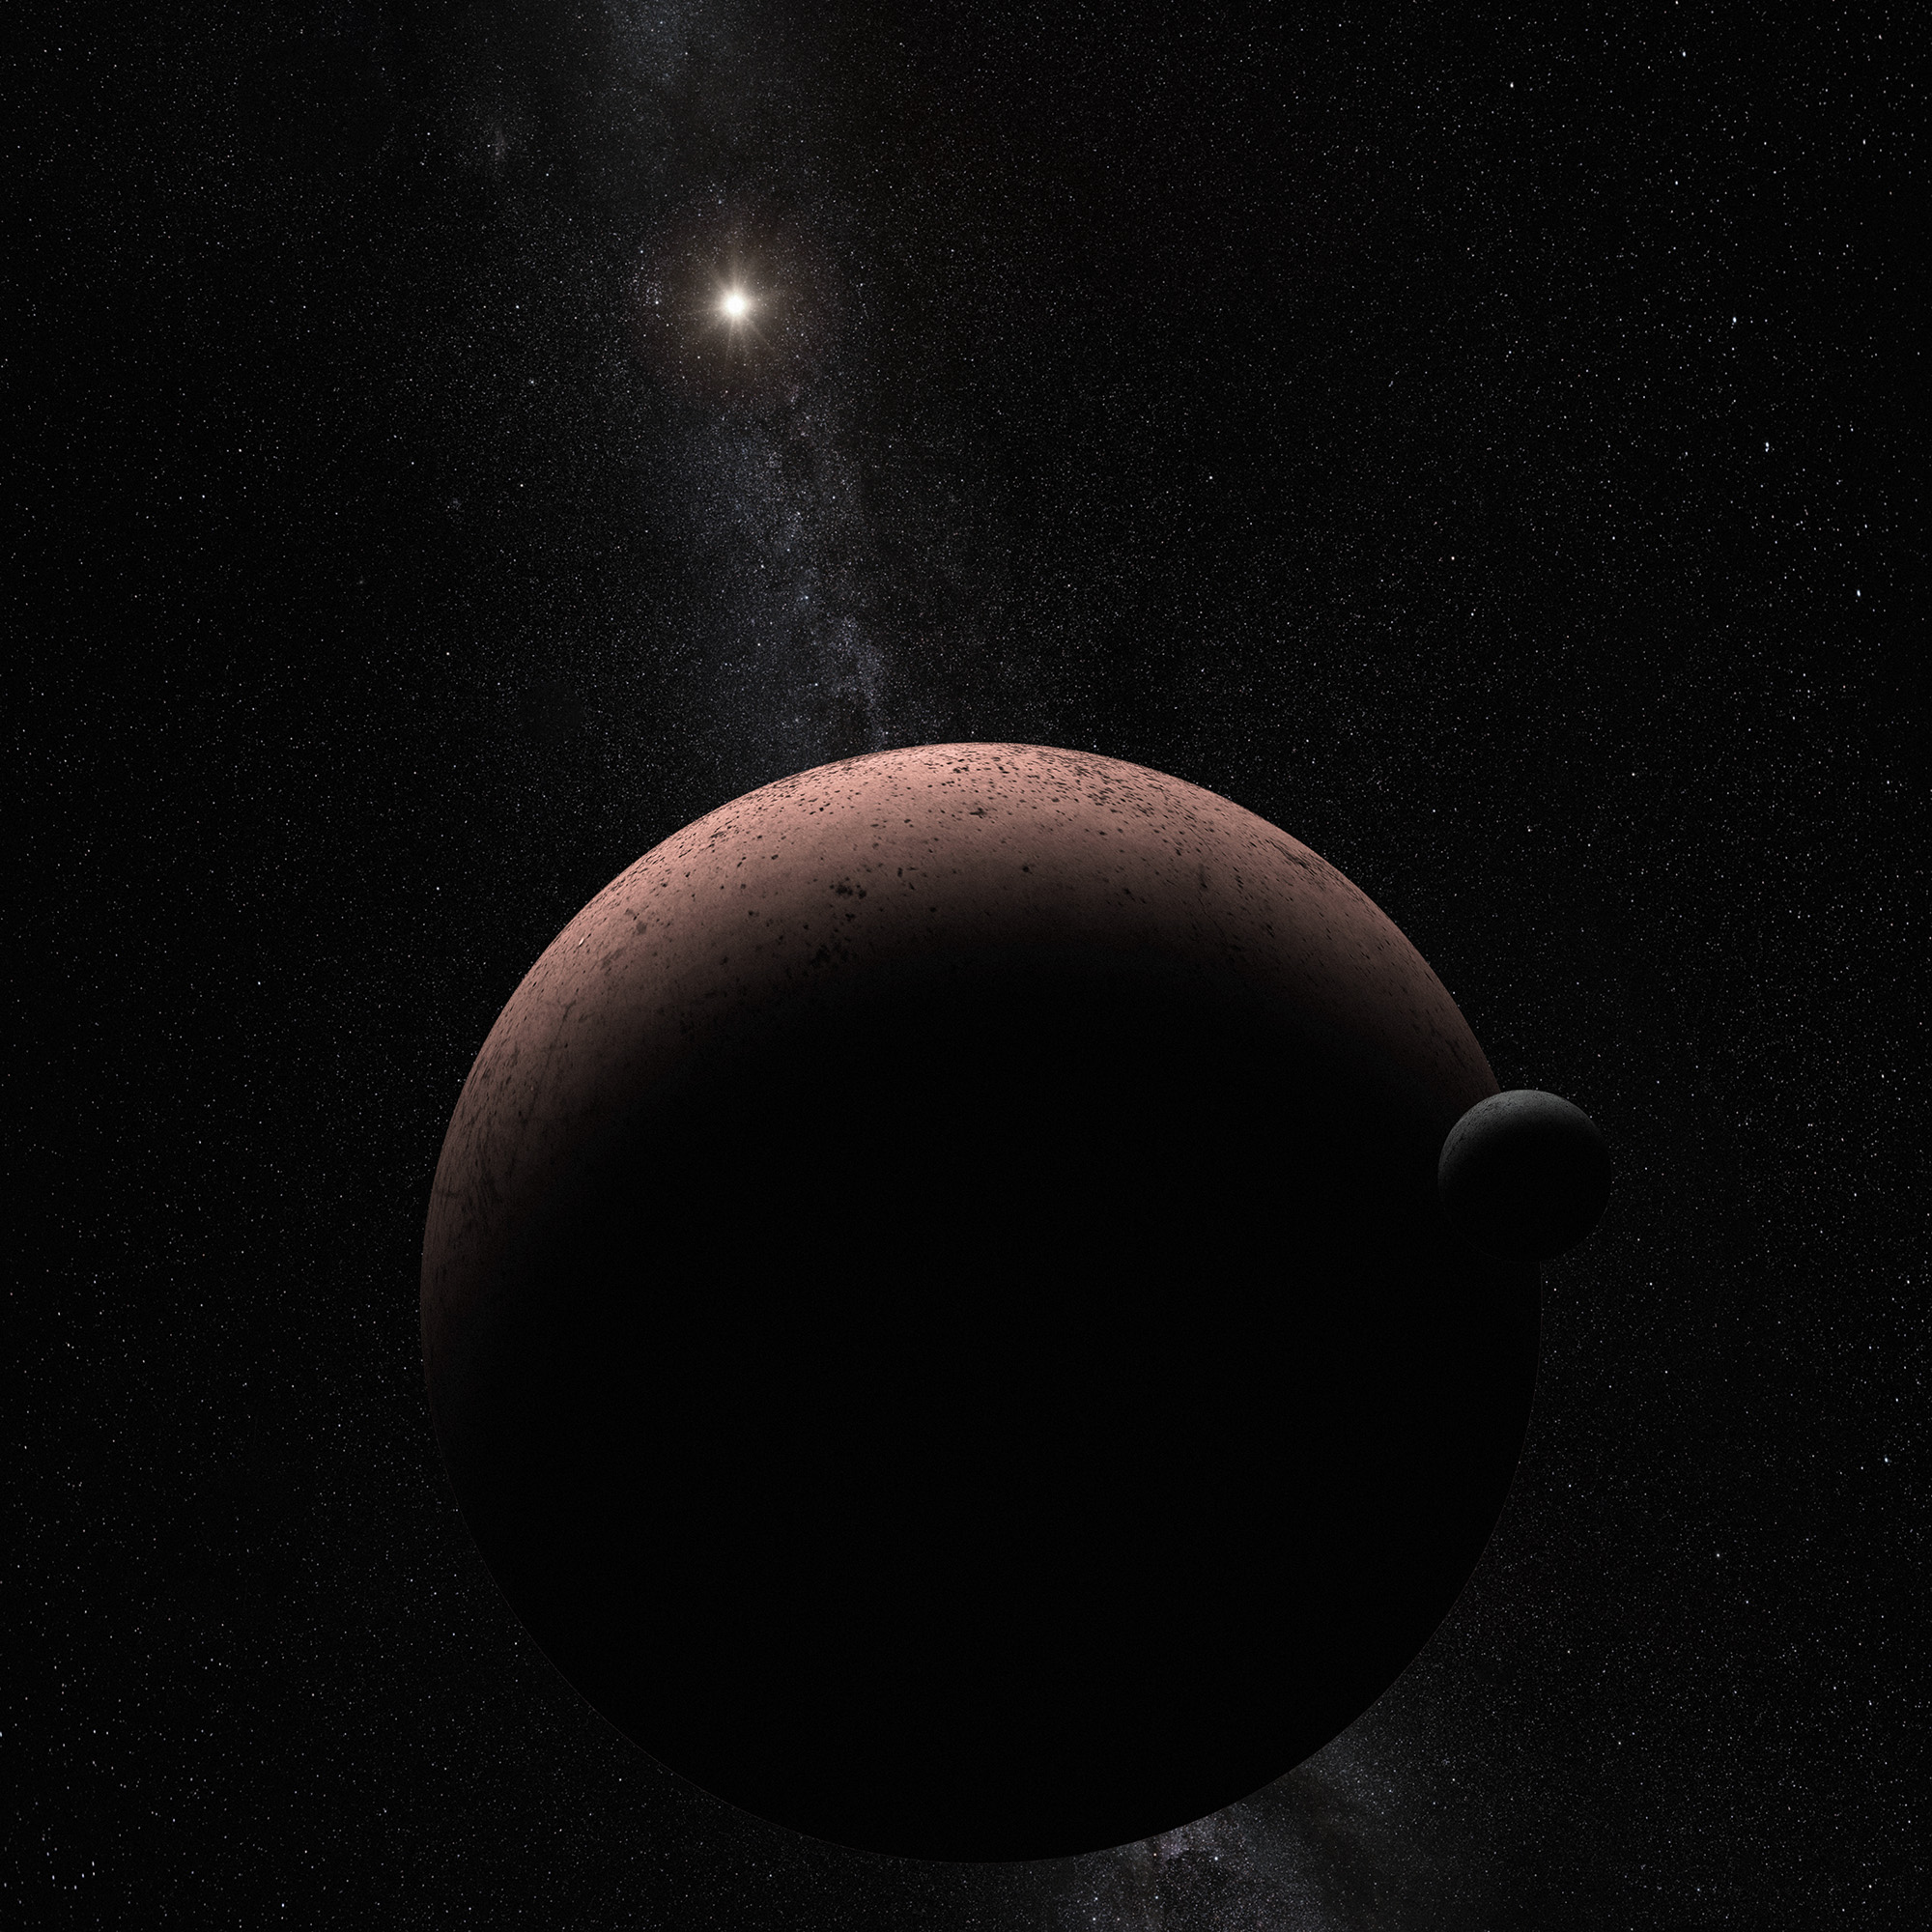 This artist's concept shows the distant dwarf planet Makemake and its newly discovered moon. Makemake and its moon, nicknamed MK 2, are more than 50 times farther away than Earth is from the sun.